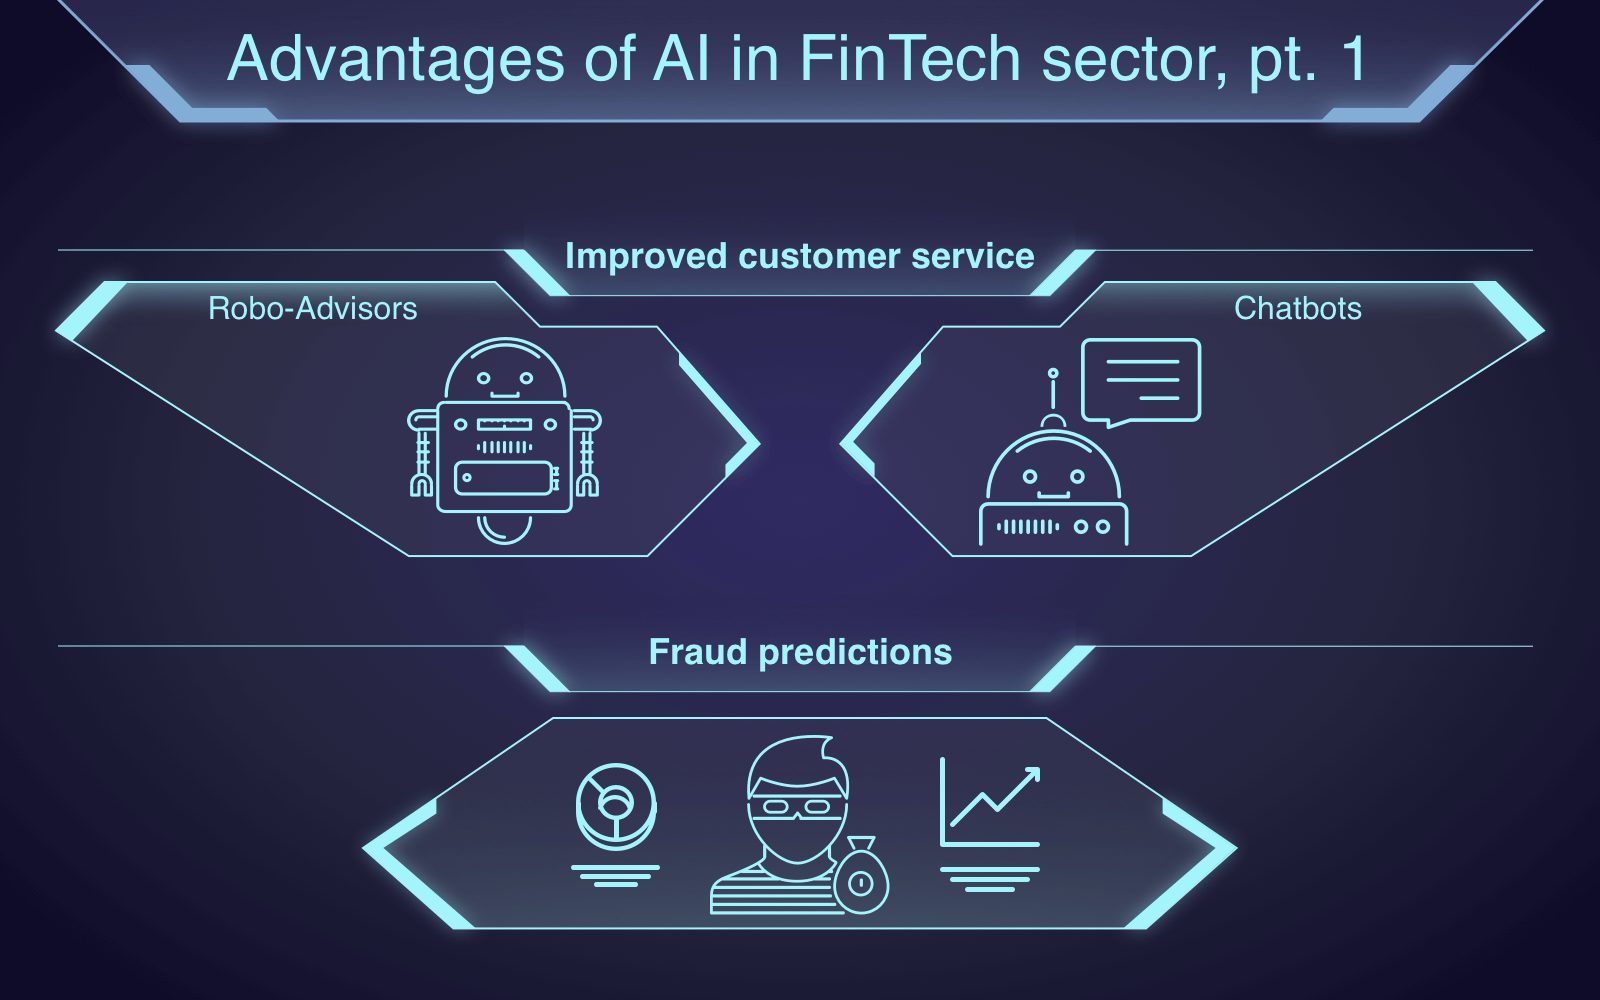 Advantages of AI in FinTech sector, part 1